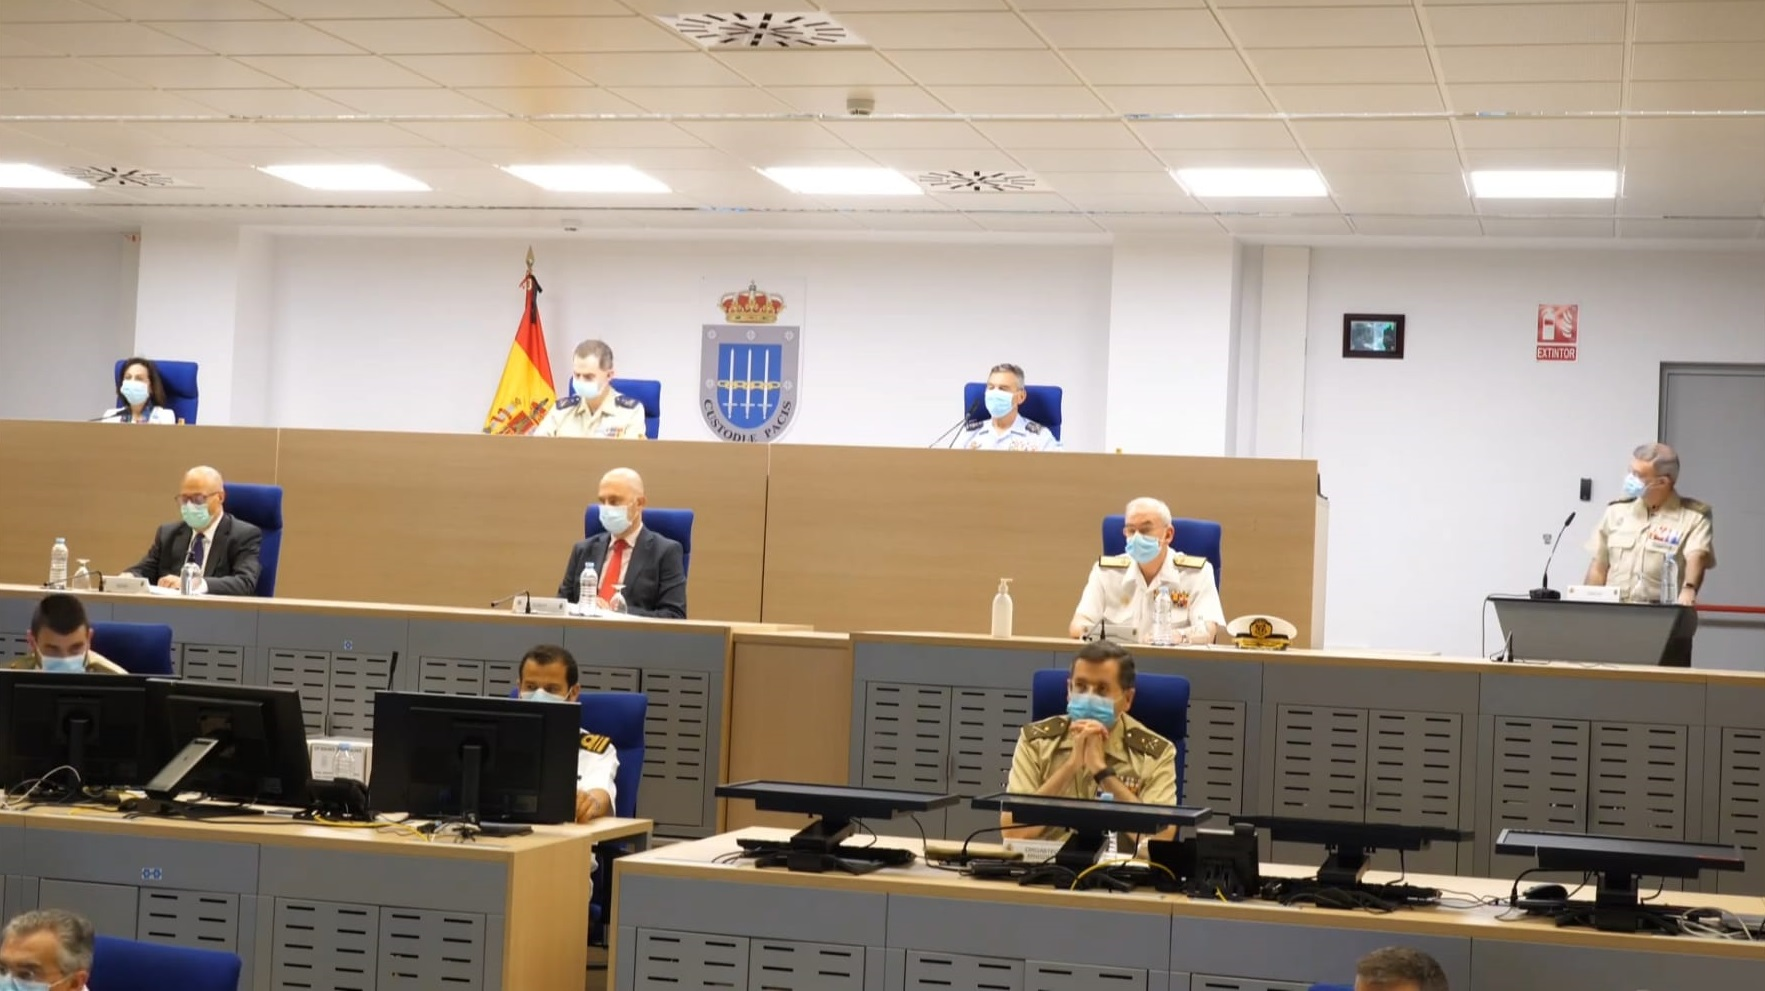 King Felipe VI holds a videoconference to congratulate Spanish troops deployed overseas and those participating in national soil